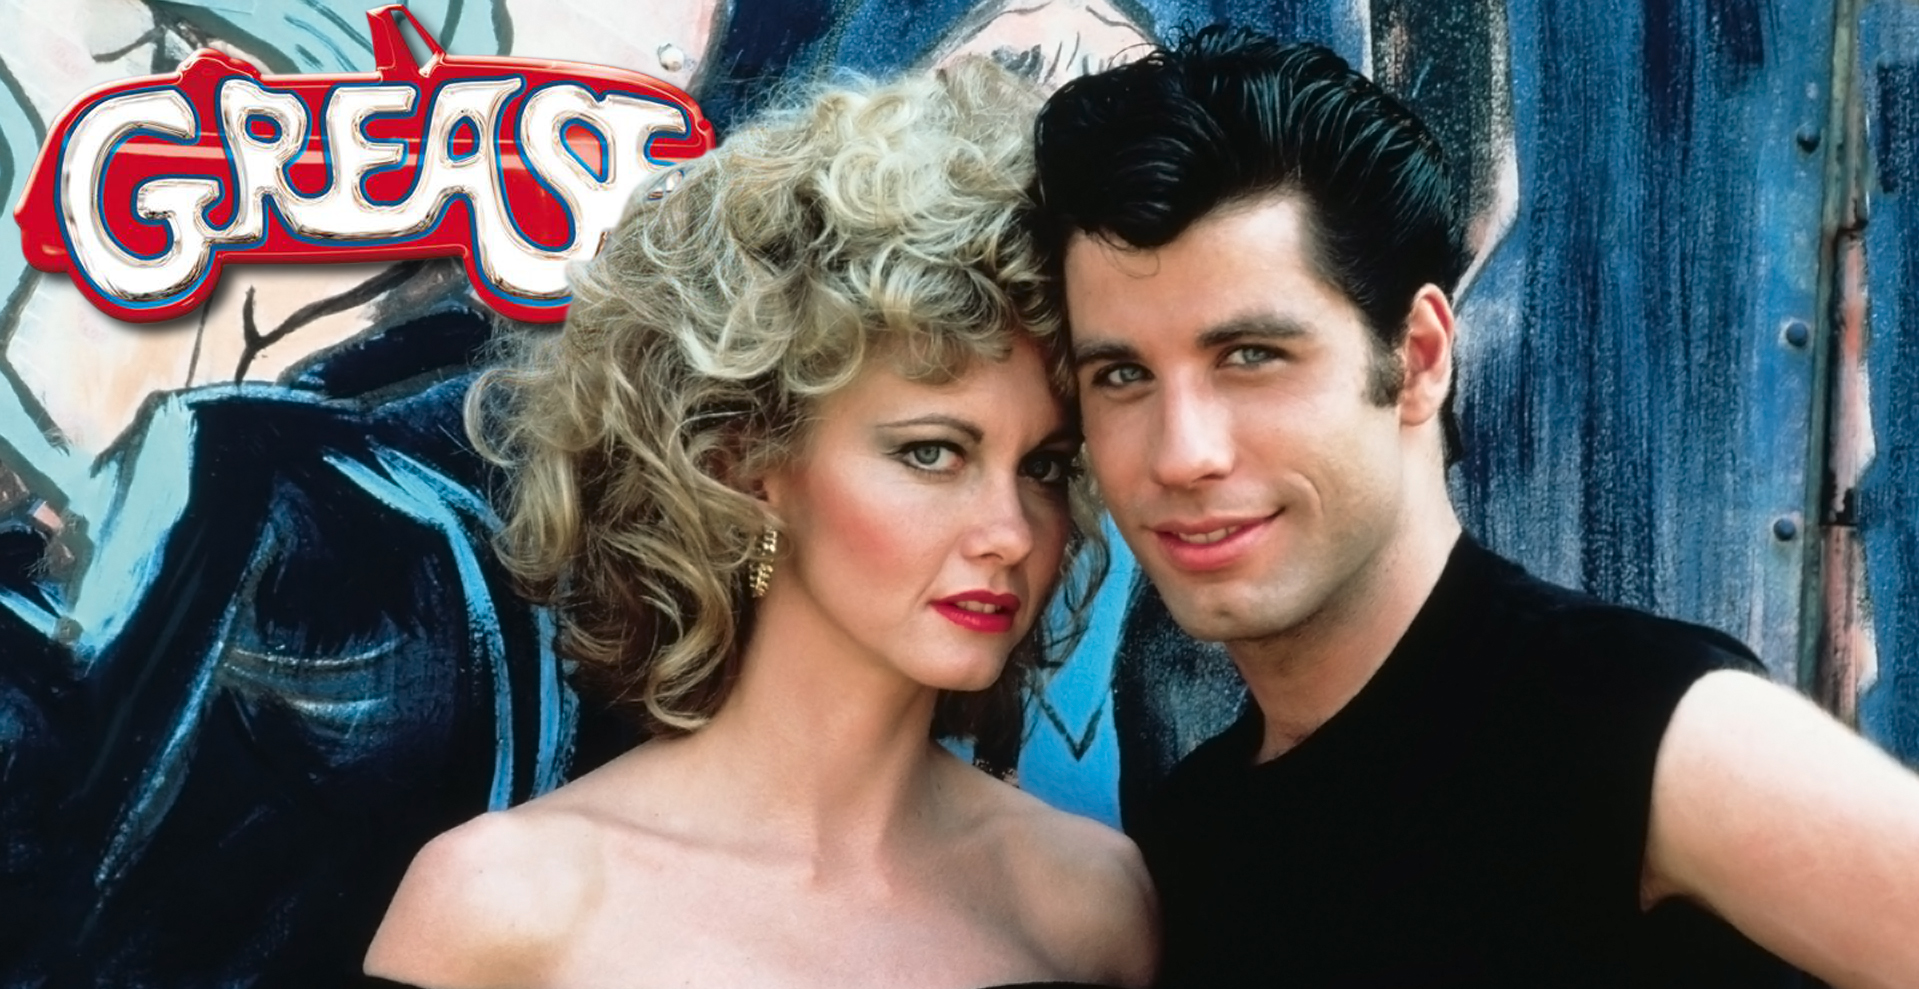 Grease - Chelmsford